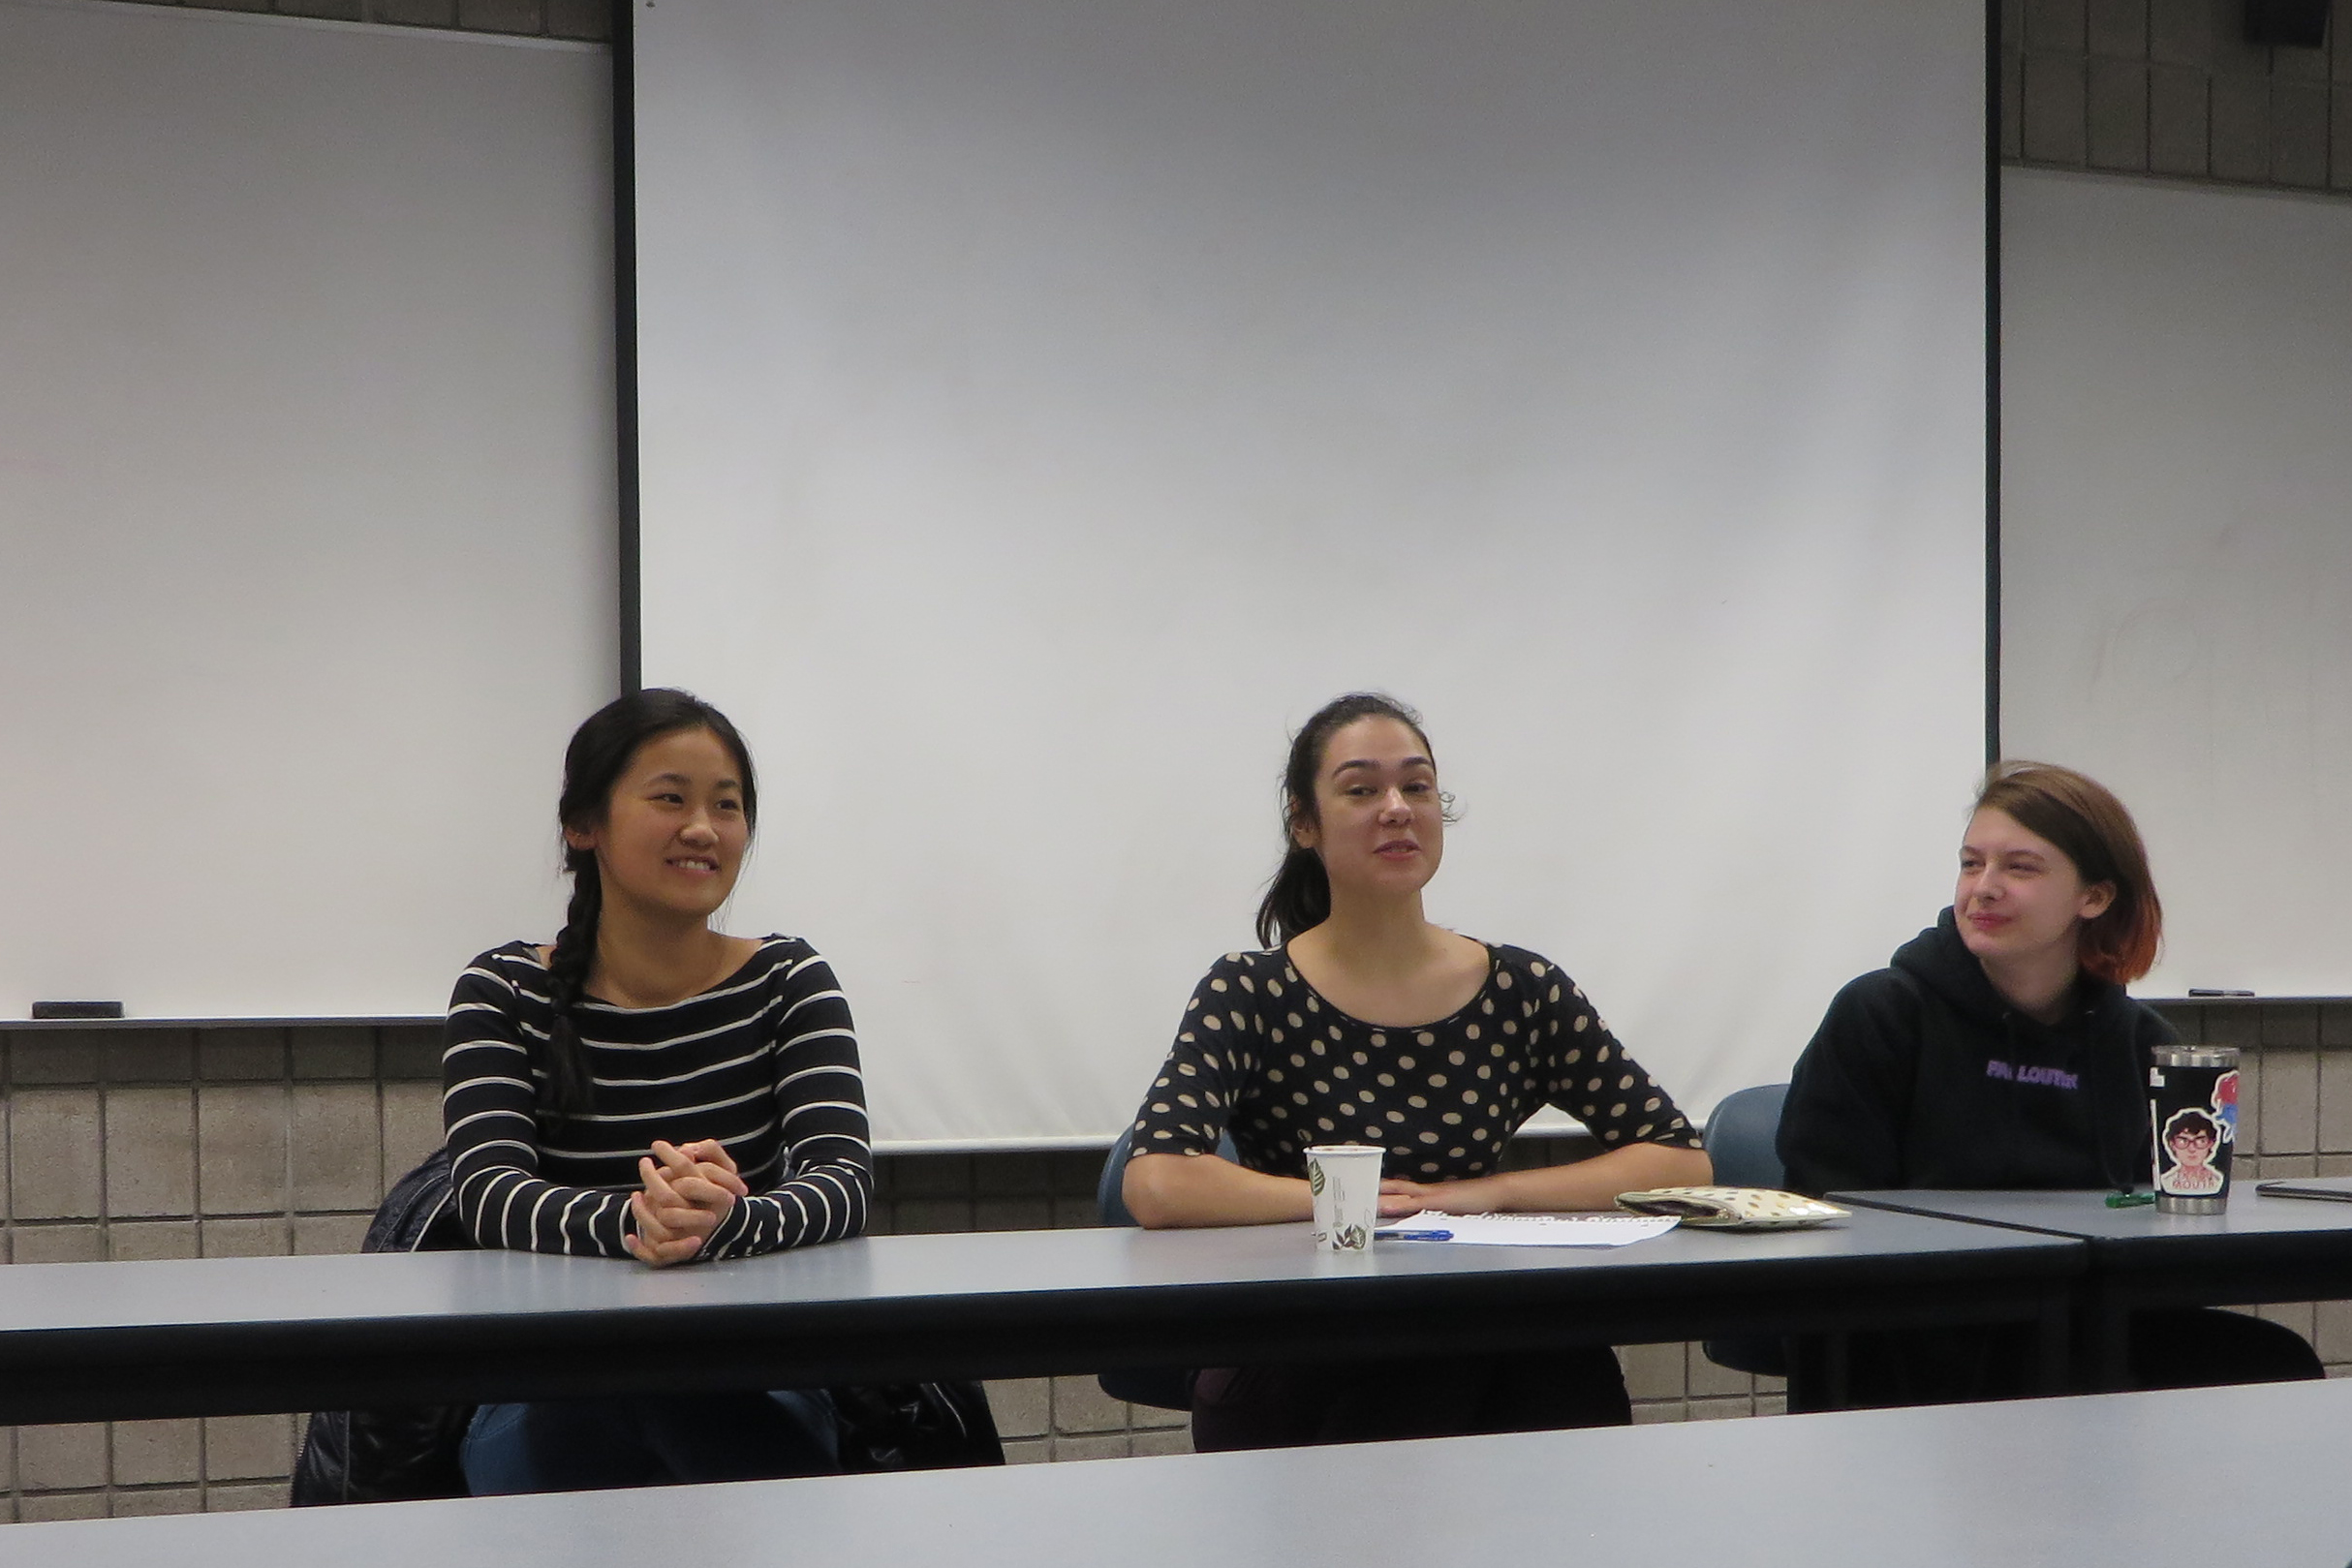 panel of three female students sitting at a table